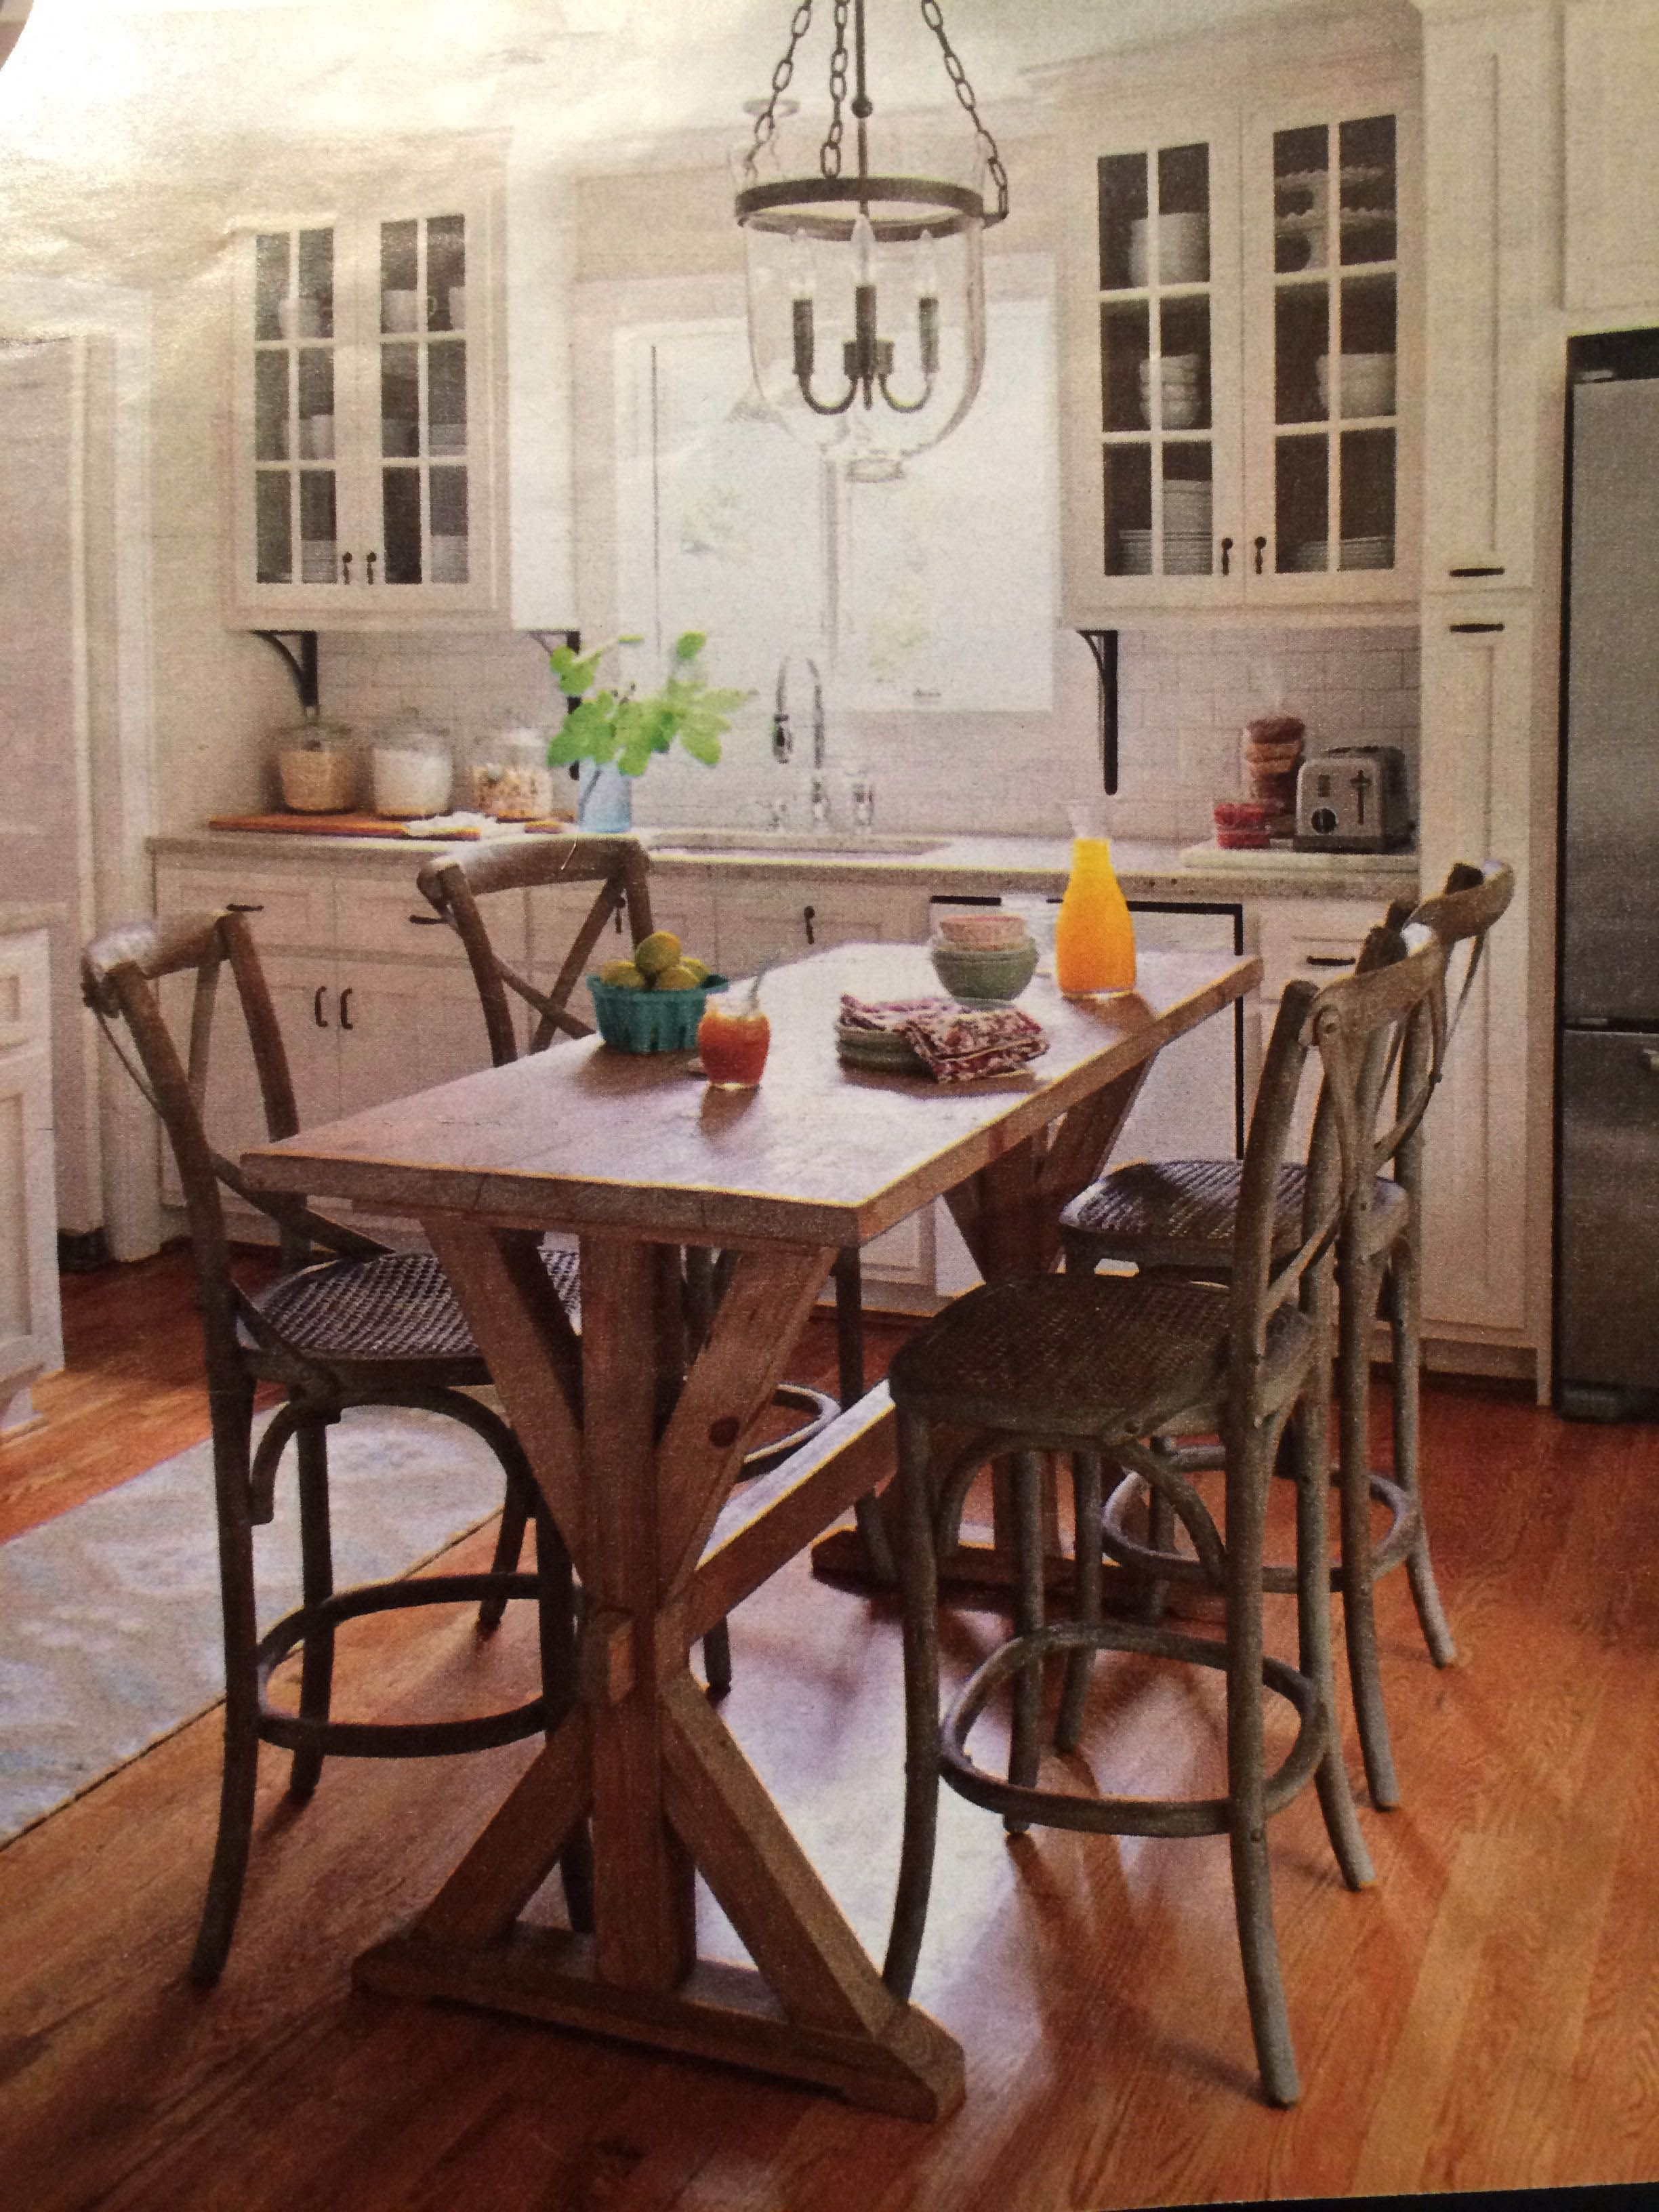 8 Small Kitchen Table Ideas for Your Home   High top table ...